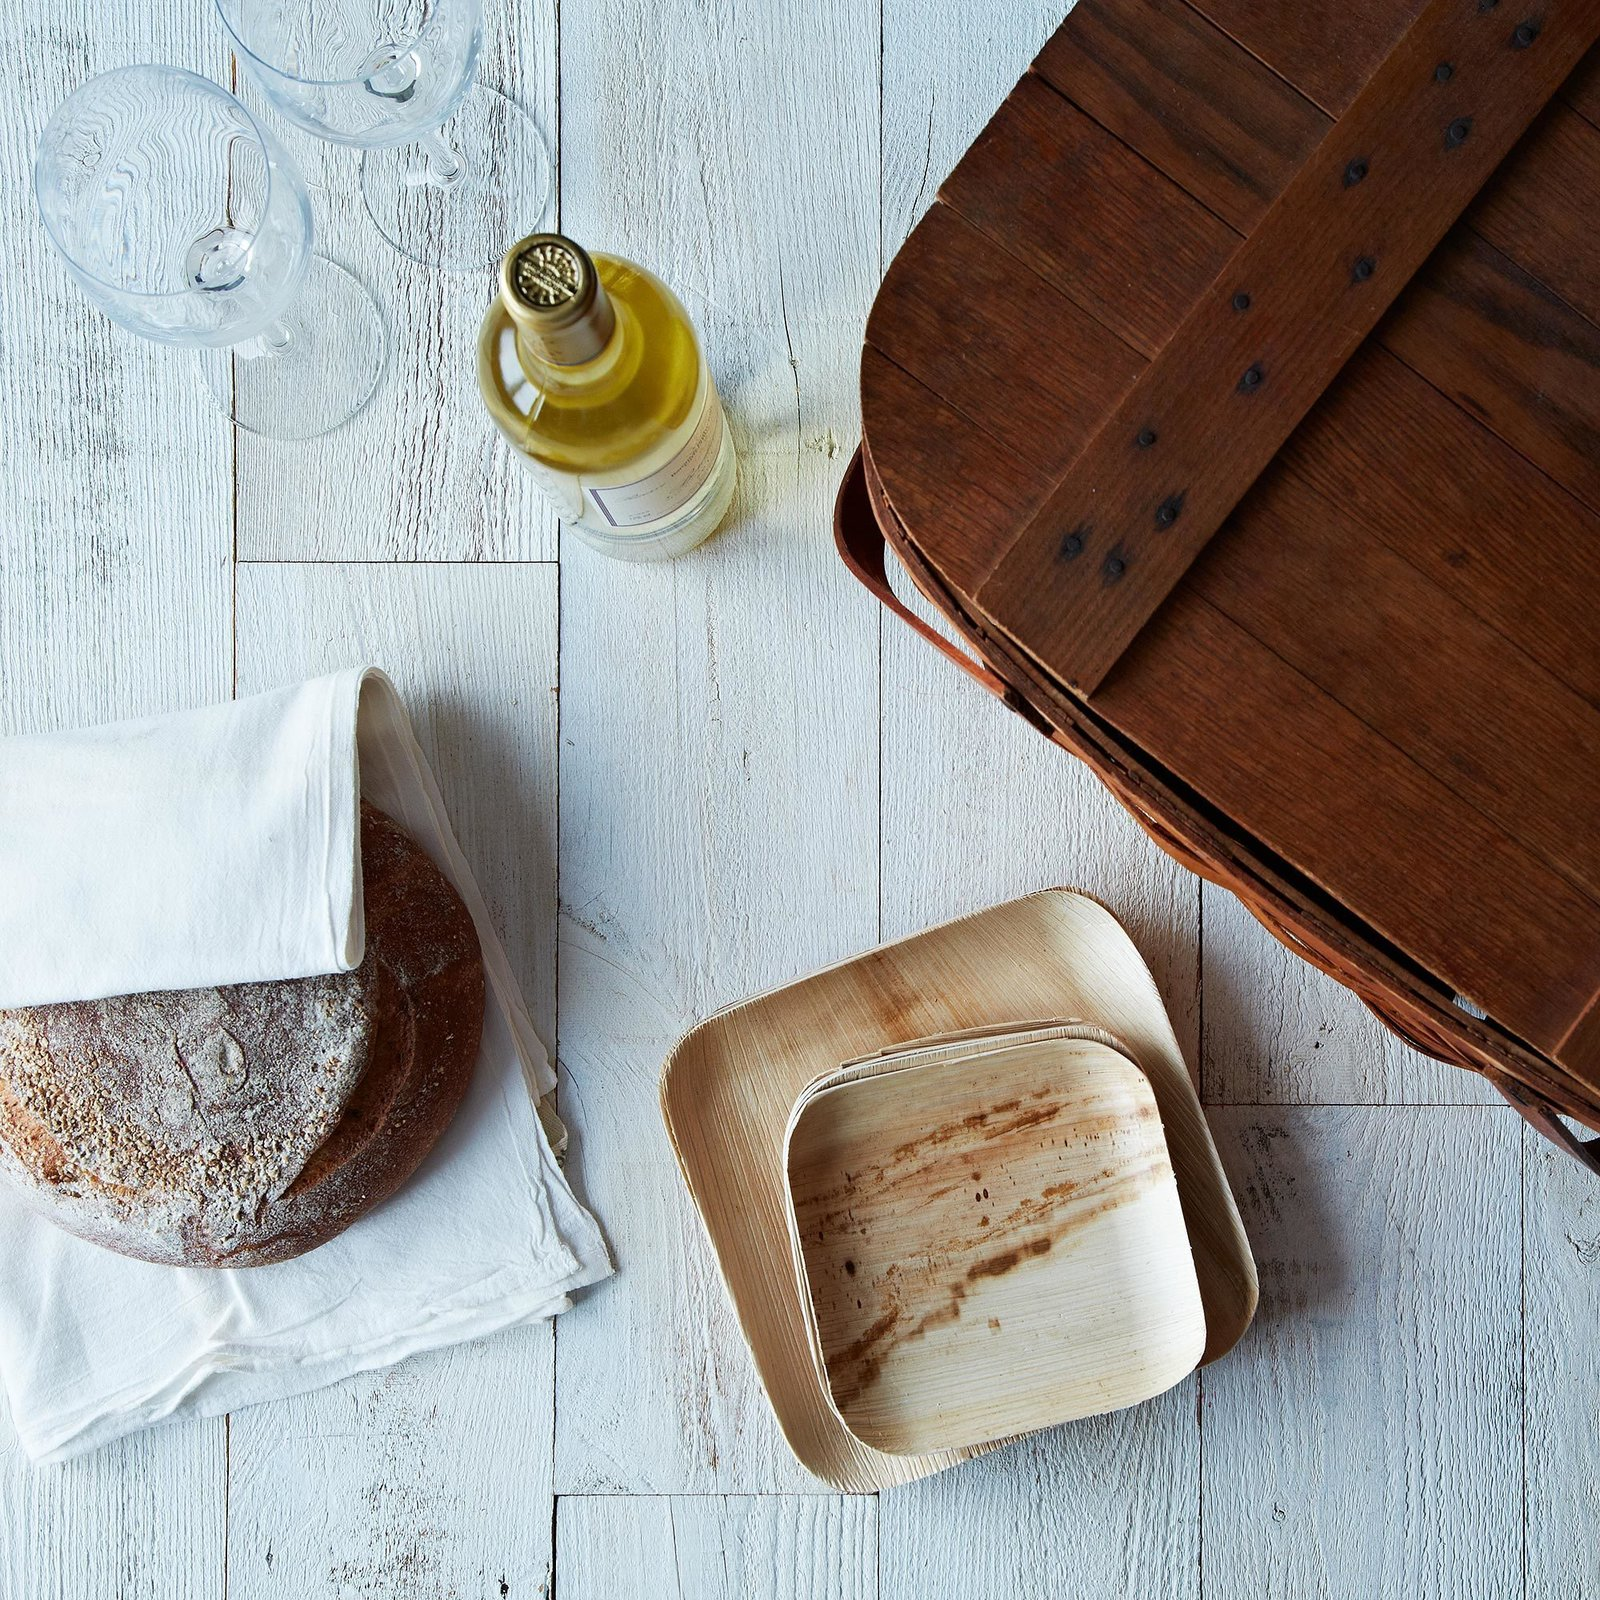 """""""These sturdy plates are made with fallen leaves -- it's difficult to get more sustainable than this."""" Verterra compostible dinnerware at Provisions, $15 for a set of 25  Photo 8 of 10 in Cooking Expert-Approved Kitchenware from Provisions"""